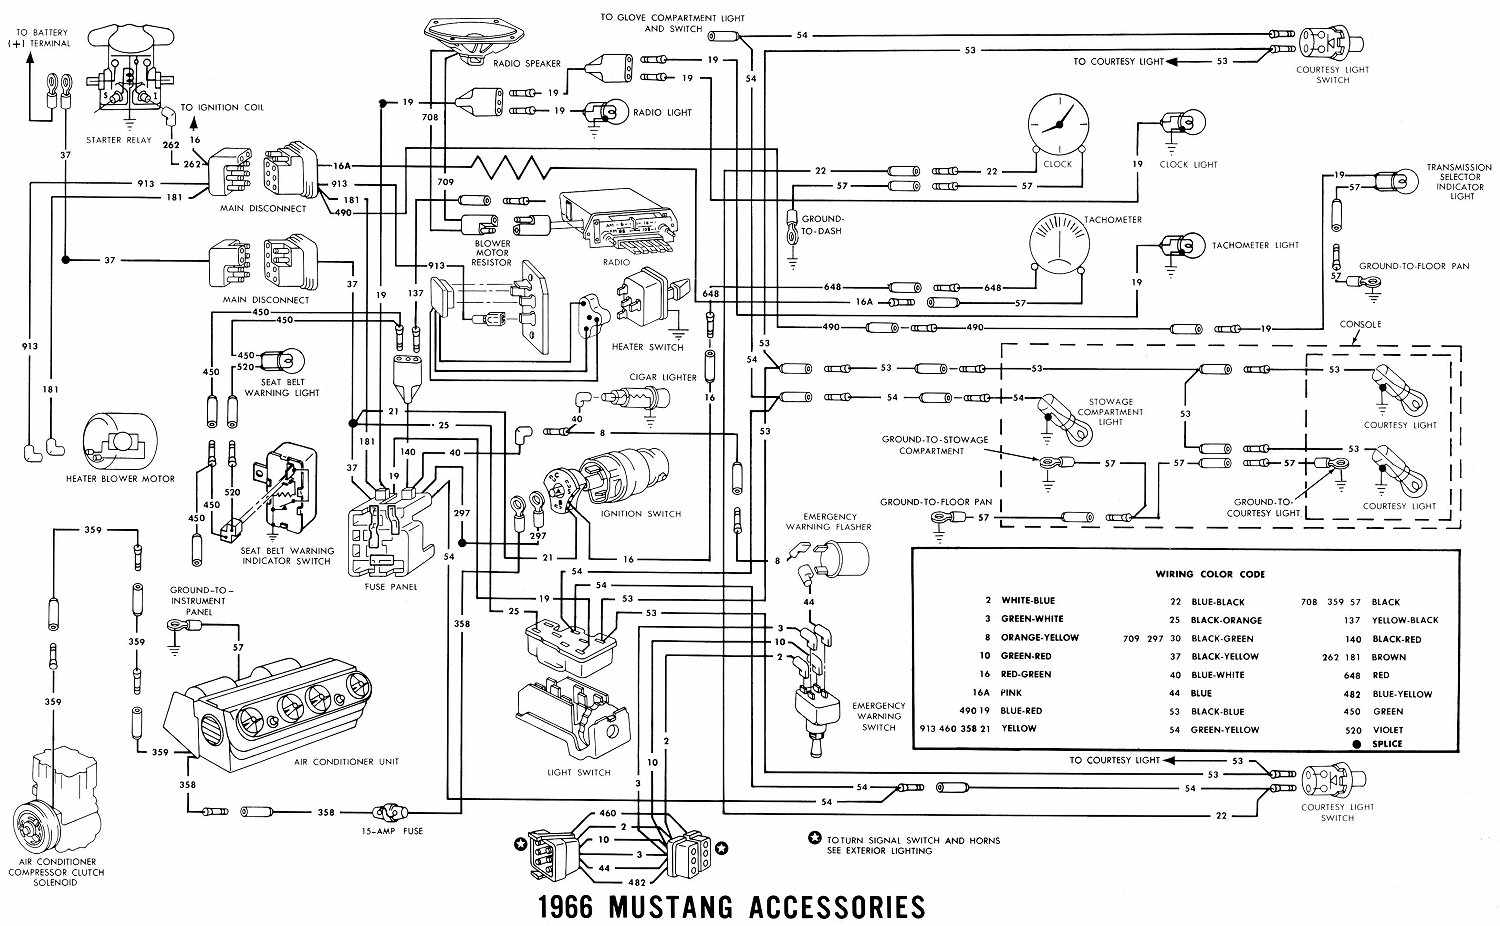 1969 Mustang Under Dash Wiring Diagram Ezgo Golf Cart 36 Volt Battery 1966 Ford Accessories Electrical Diagrams | Schematic Solutions